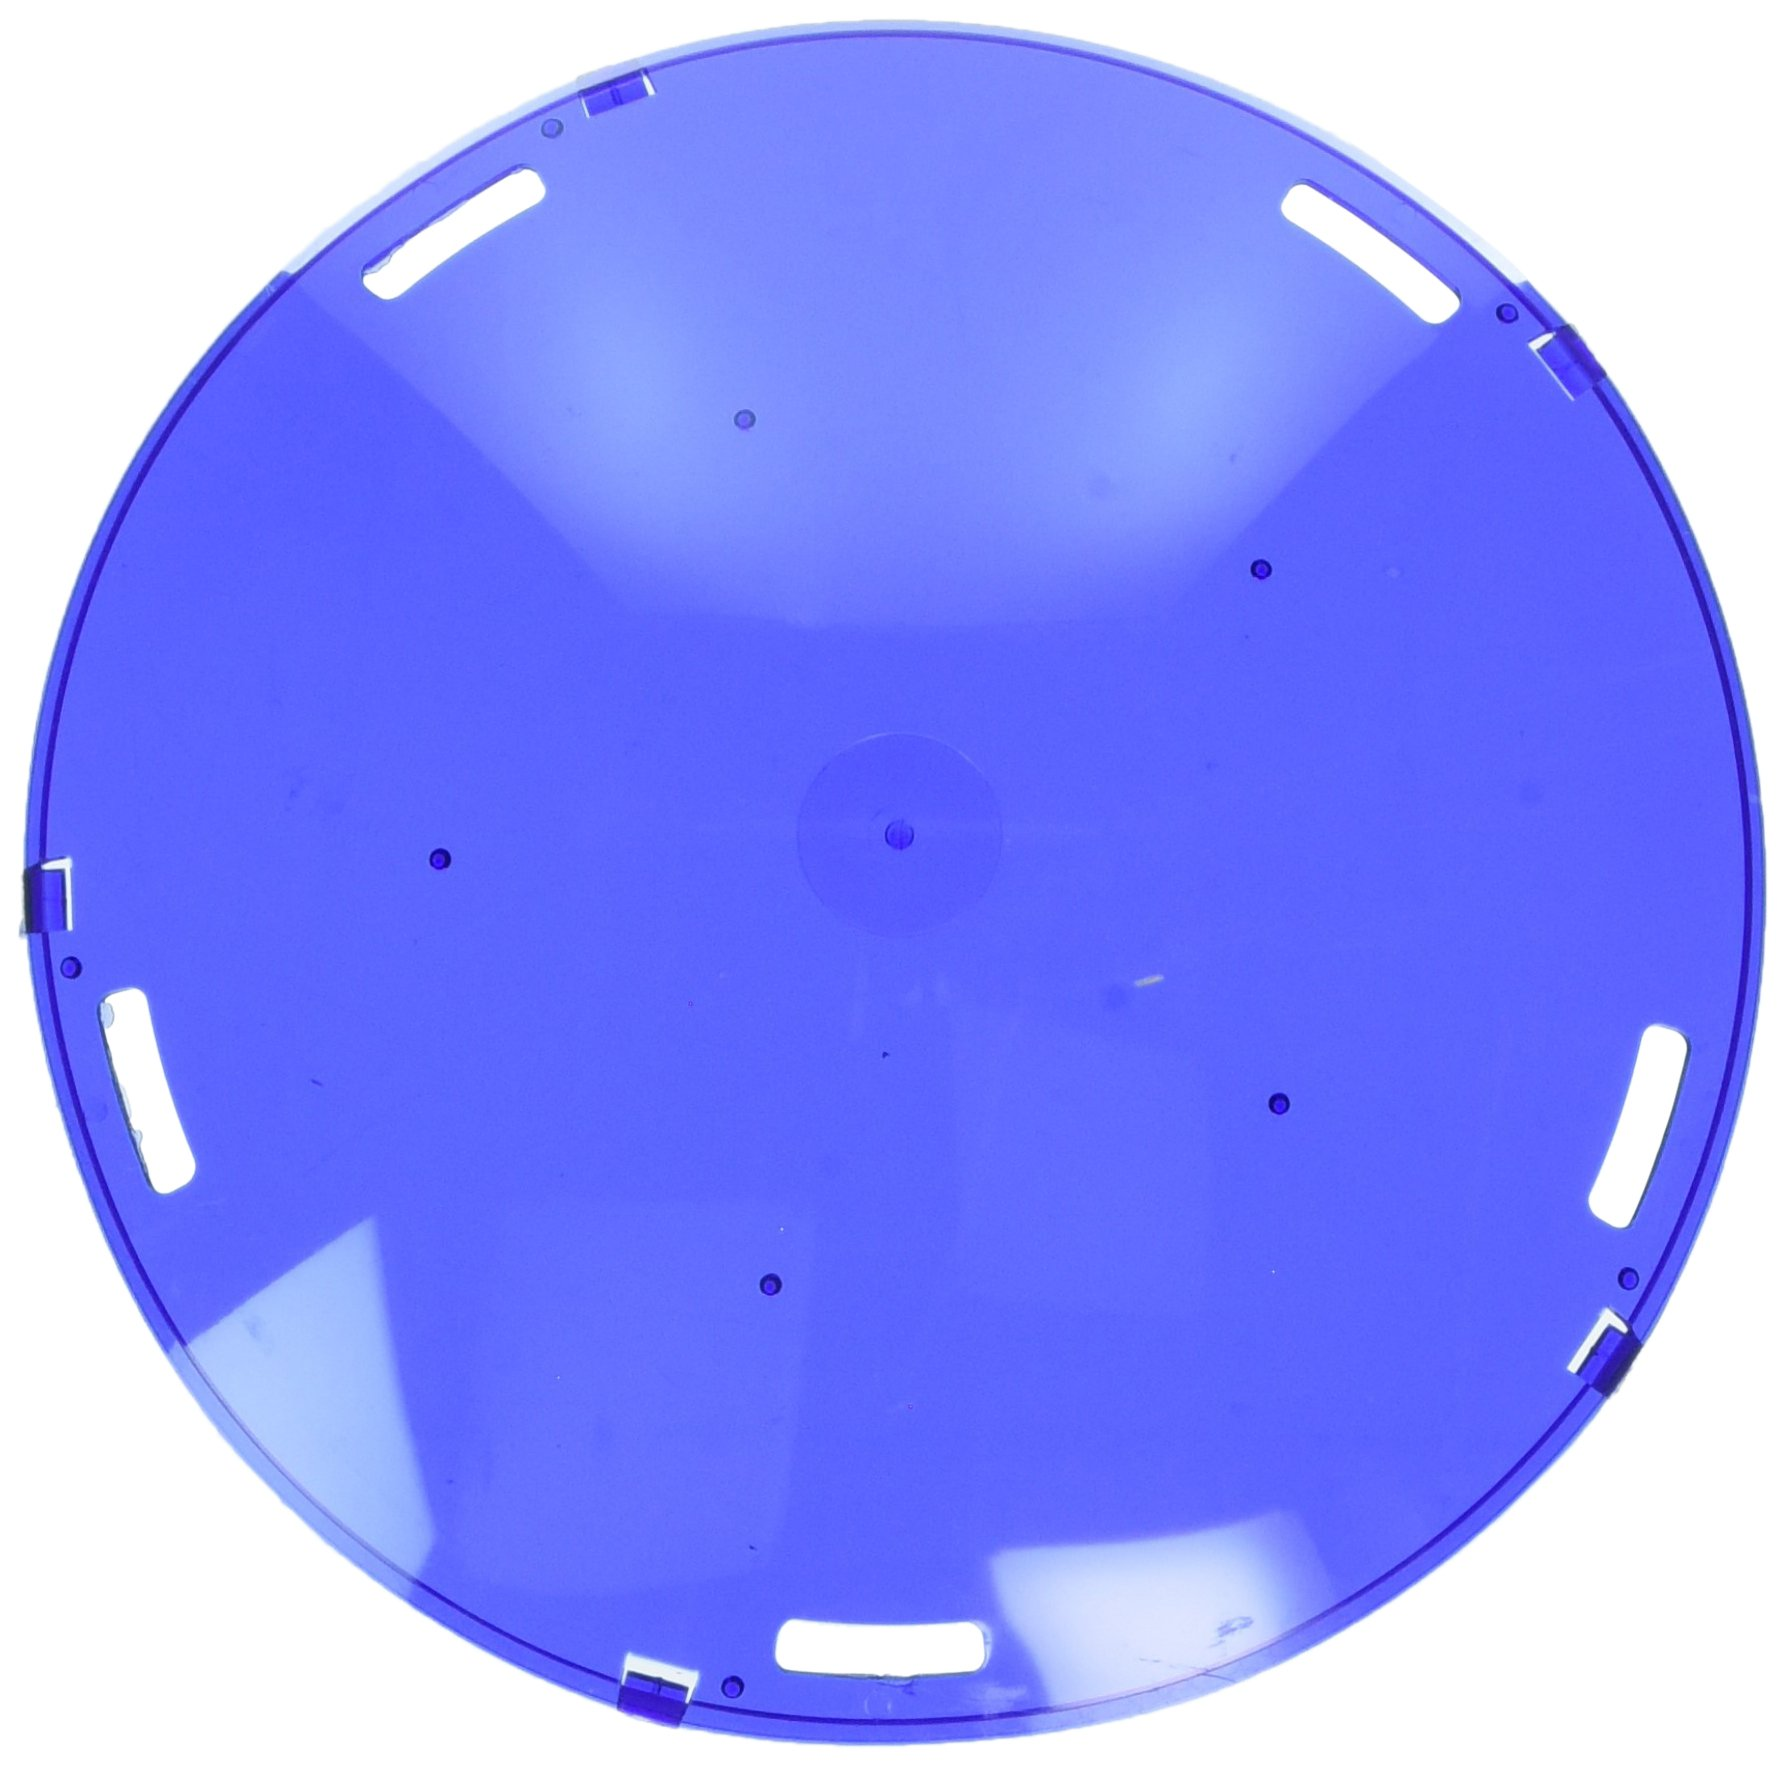 Pentair 78883701 Blue Kwik Change Lens Cover Replacement AquaLumin Pool and Spa Light